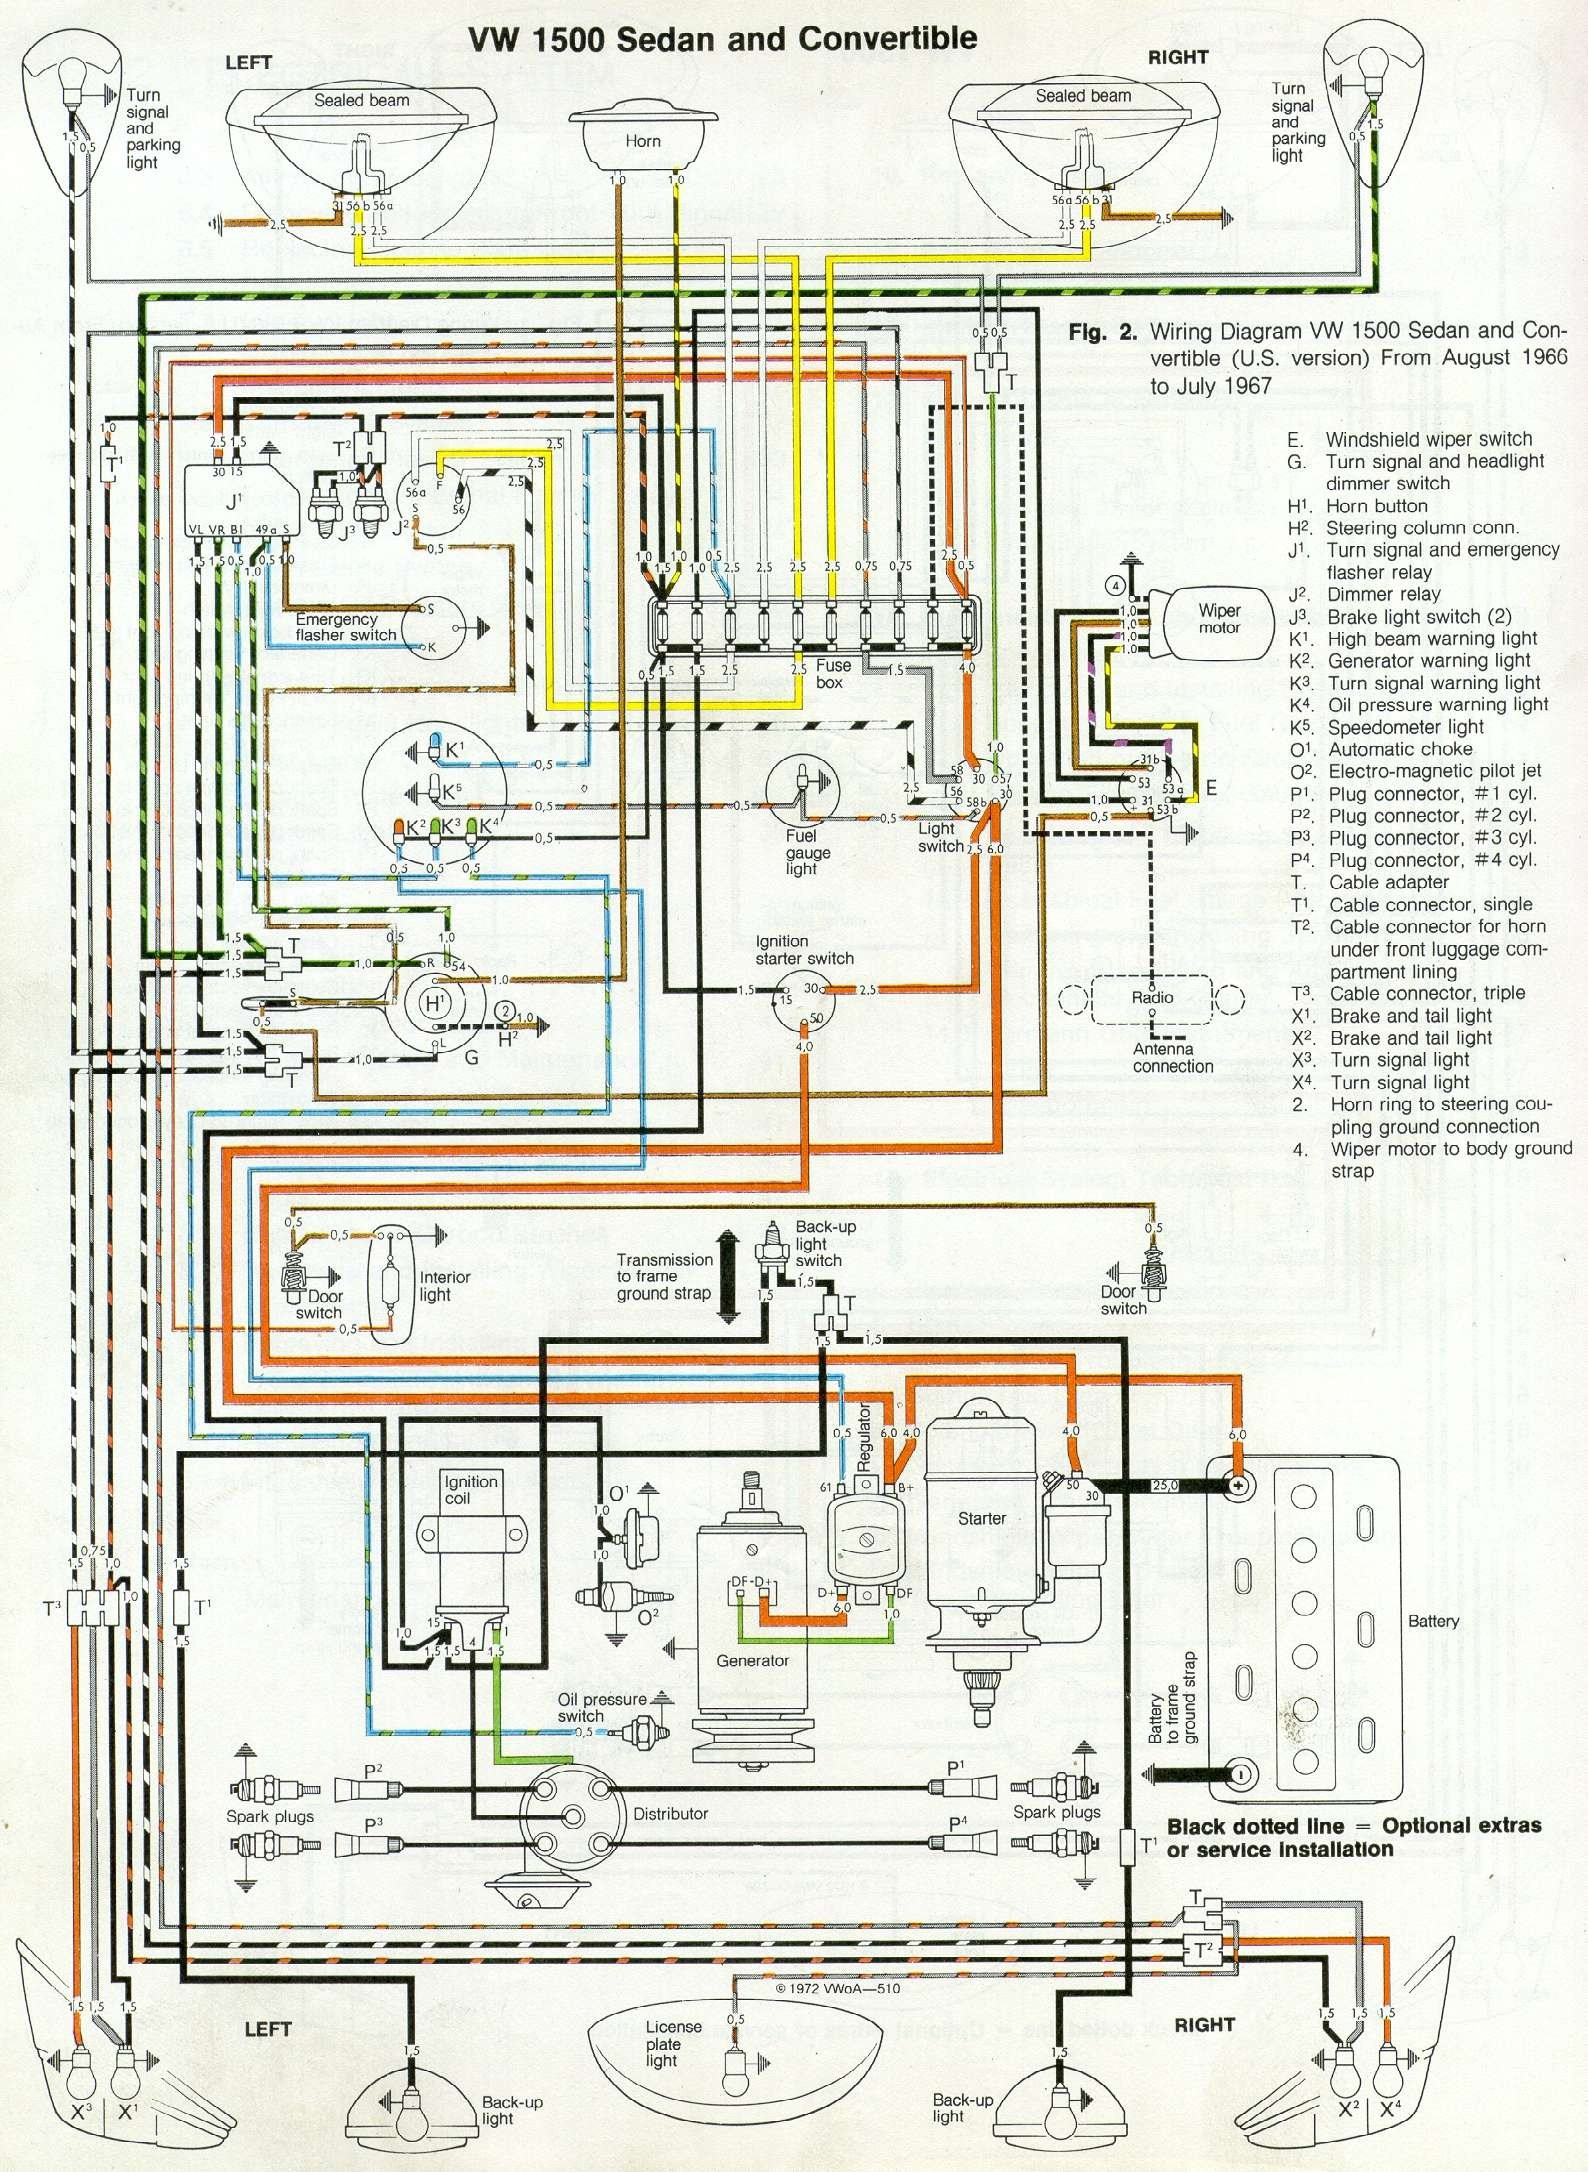 VW Beetle Wiring Digram 67 beetle wiring diagram u s version 1967 vw beetle vw beetle wiring diagram at readyjetset.co